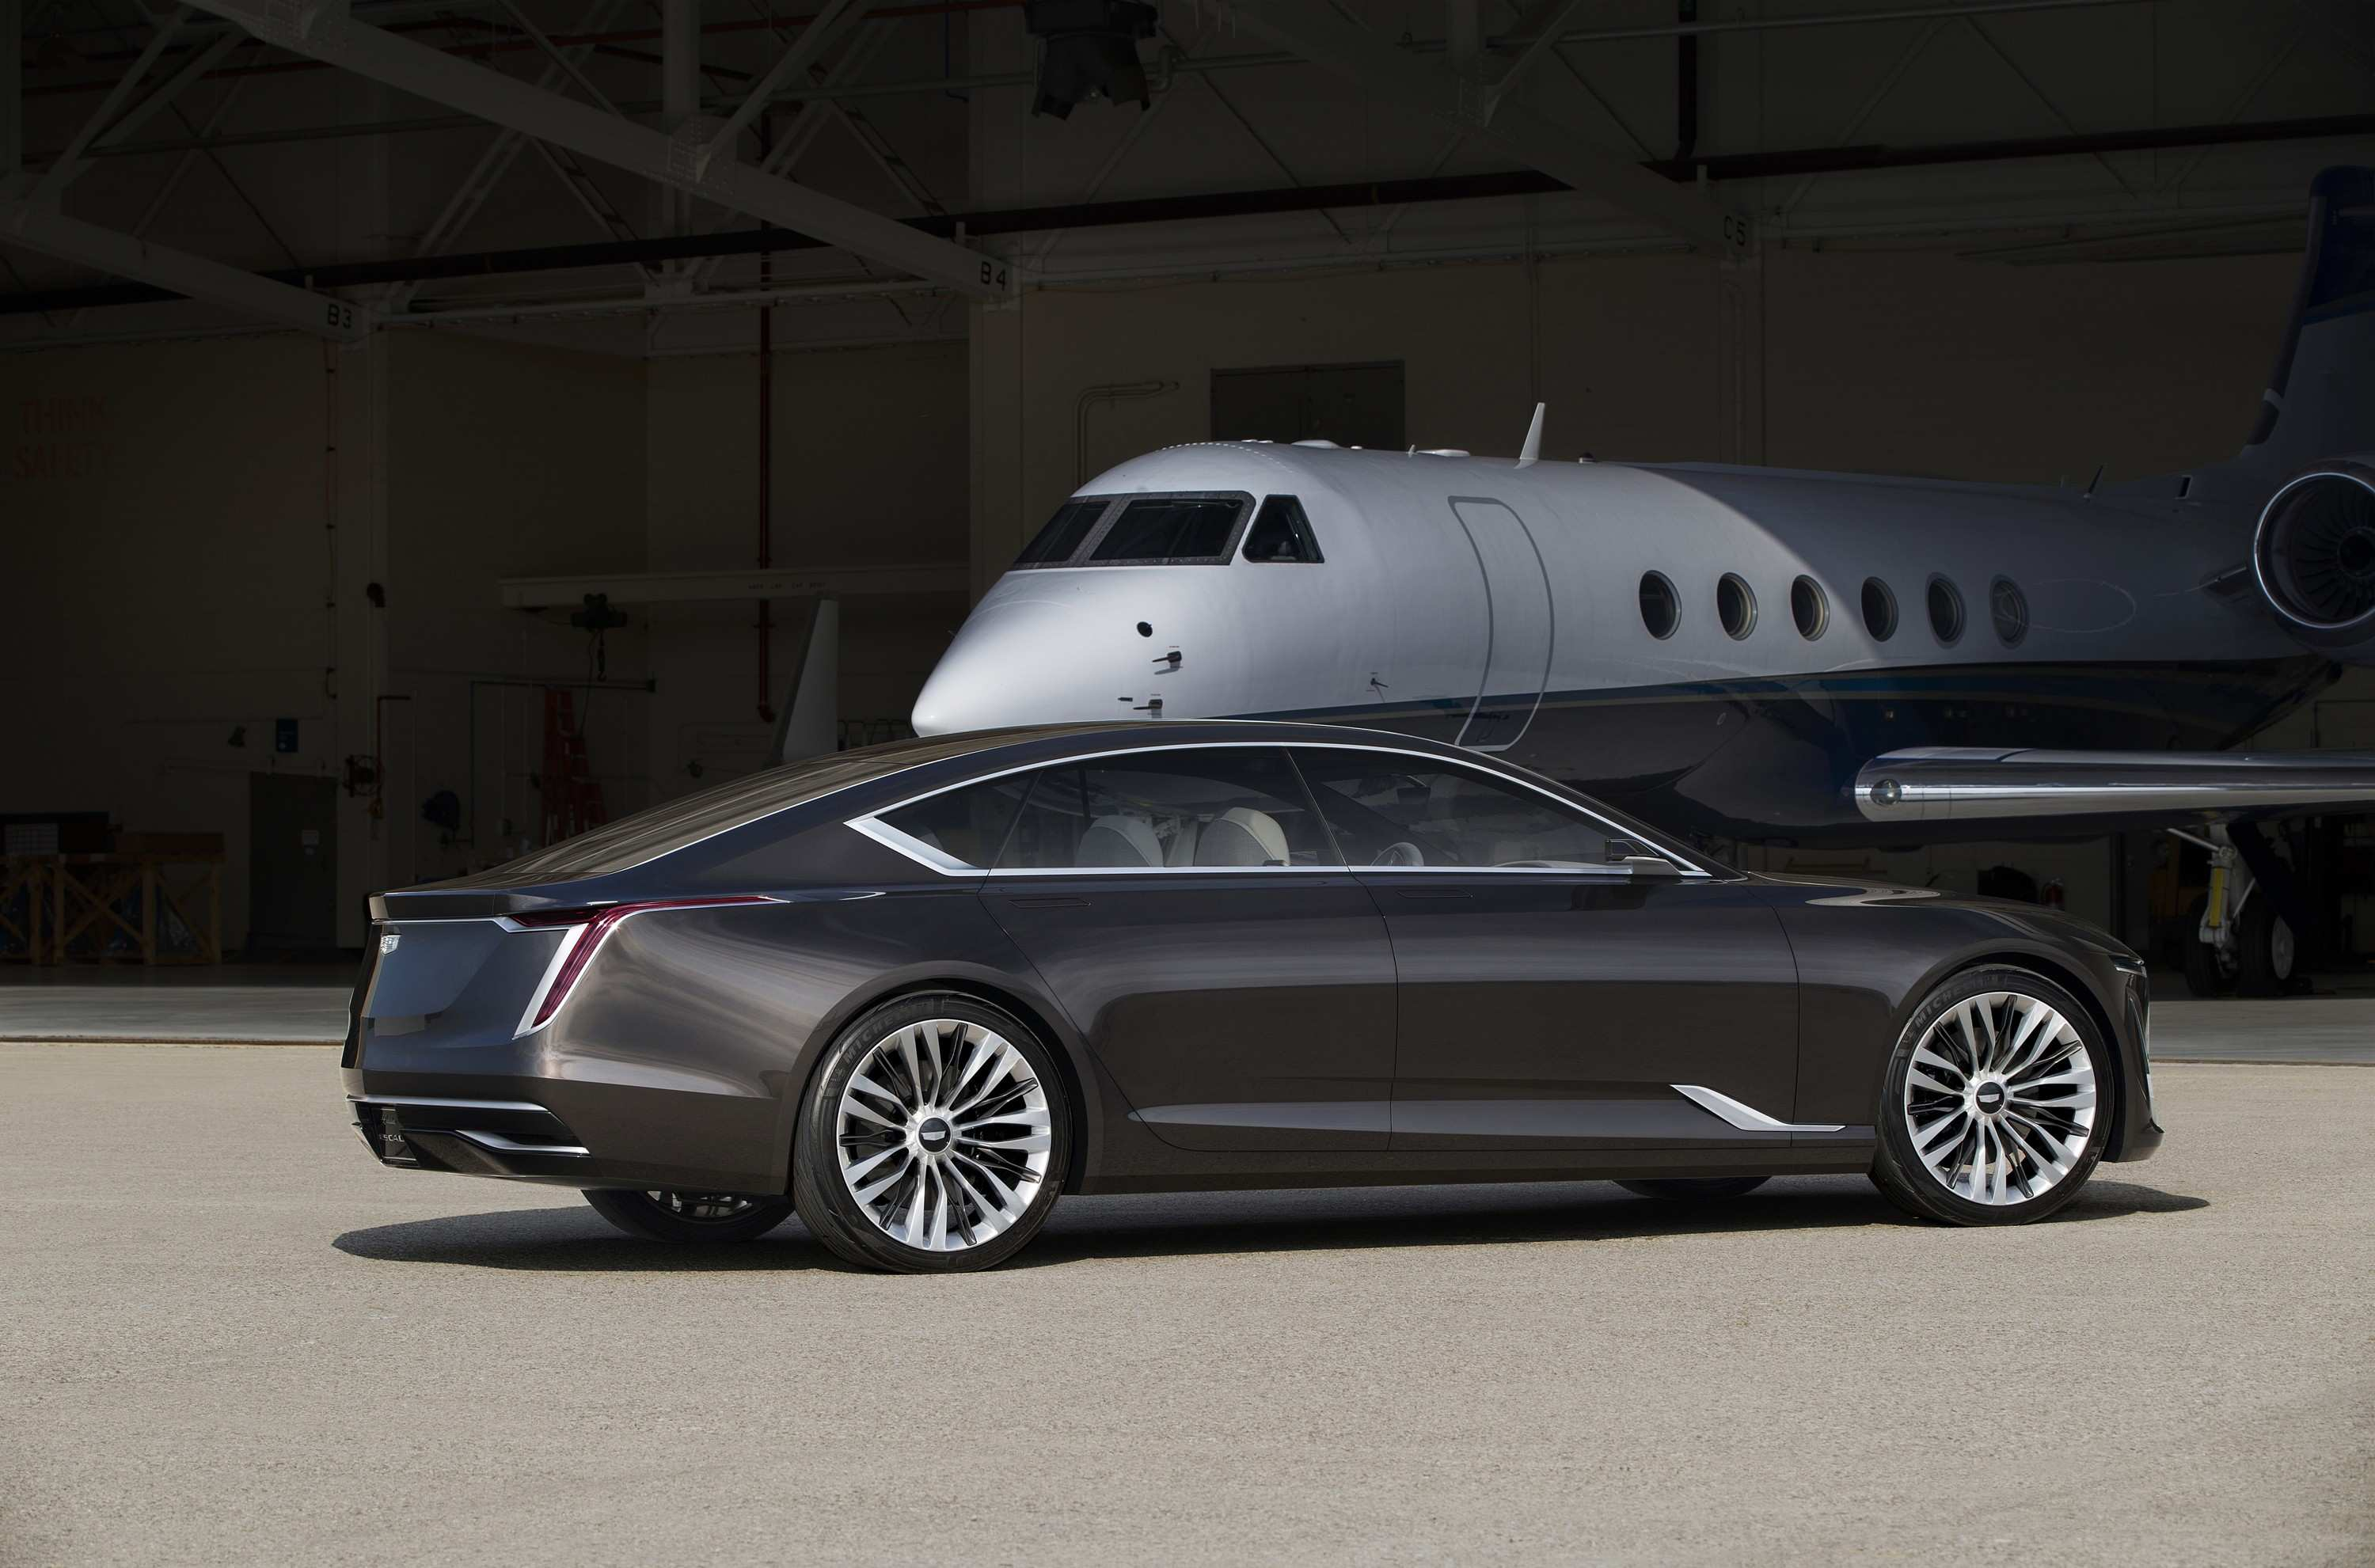 62 The Best 2020 Candillac Xts Performance